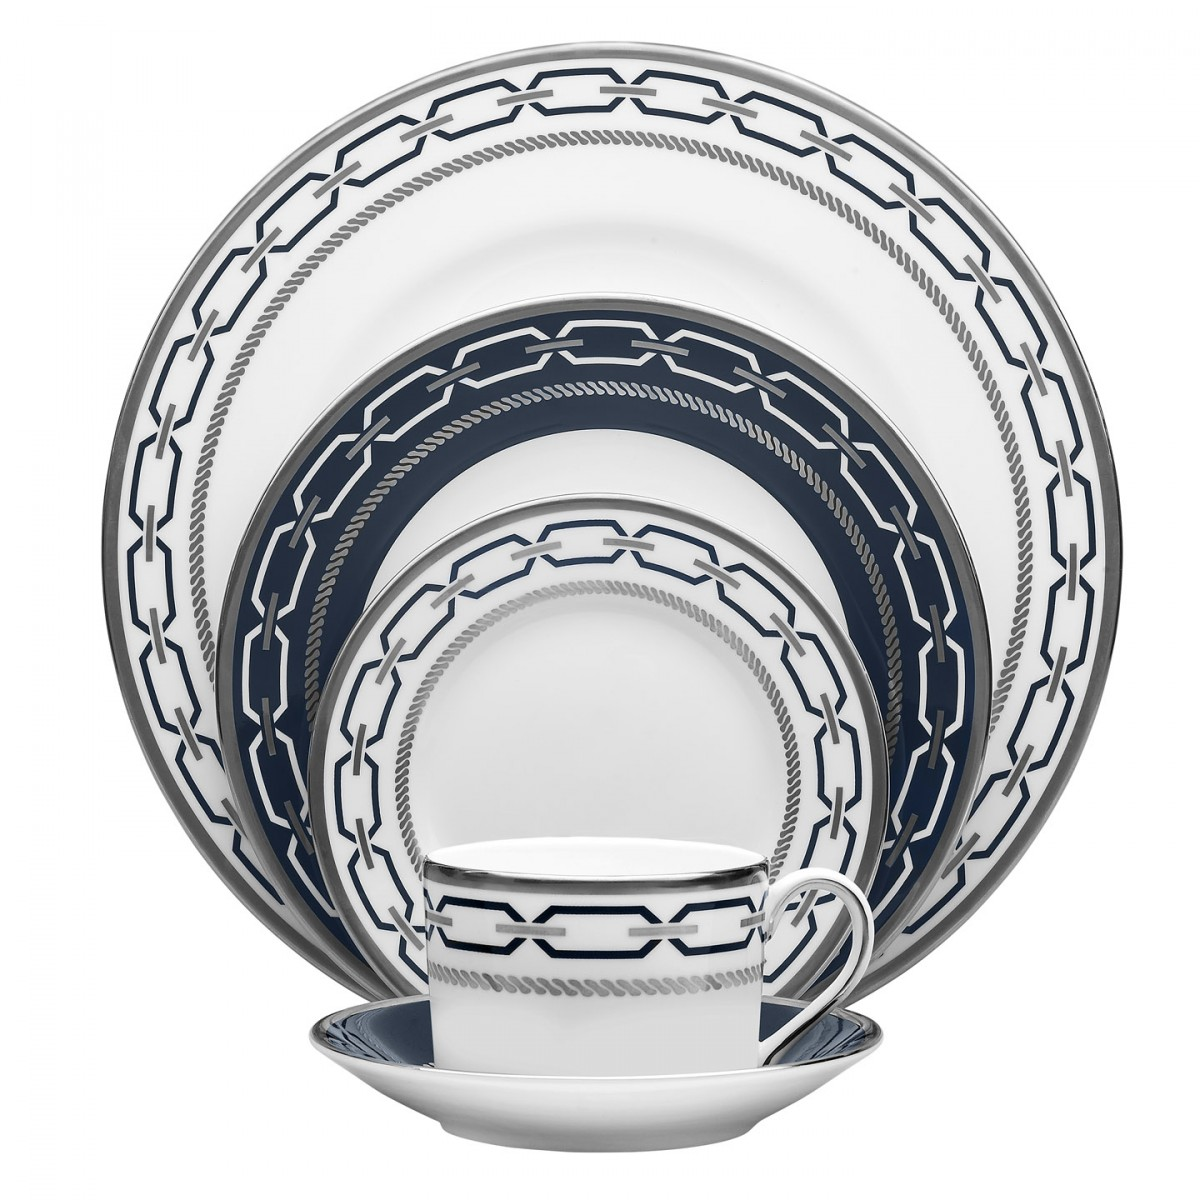 vera-wang-wedgwood-with-love-nouveau-indigo-5-piece-place-setting-701587213097.jpg